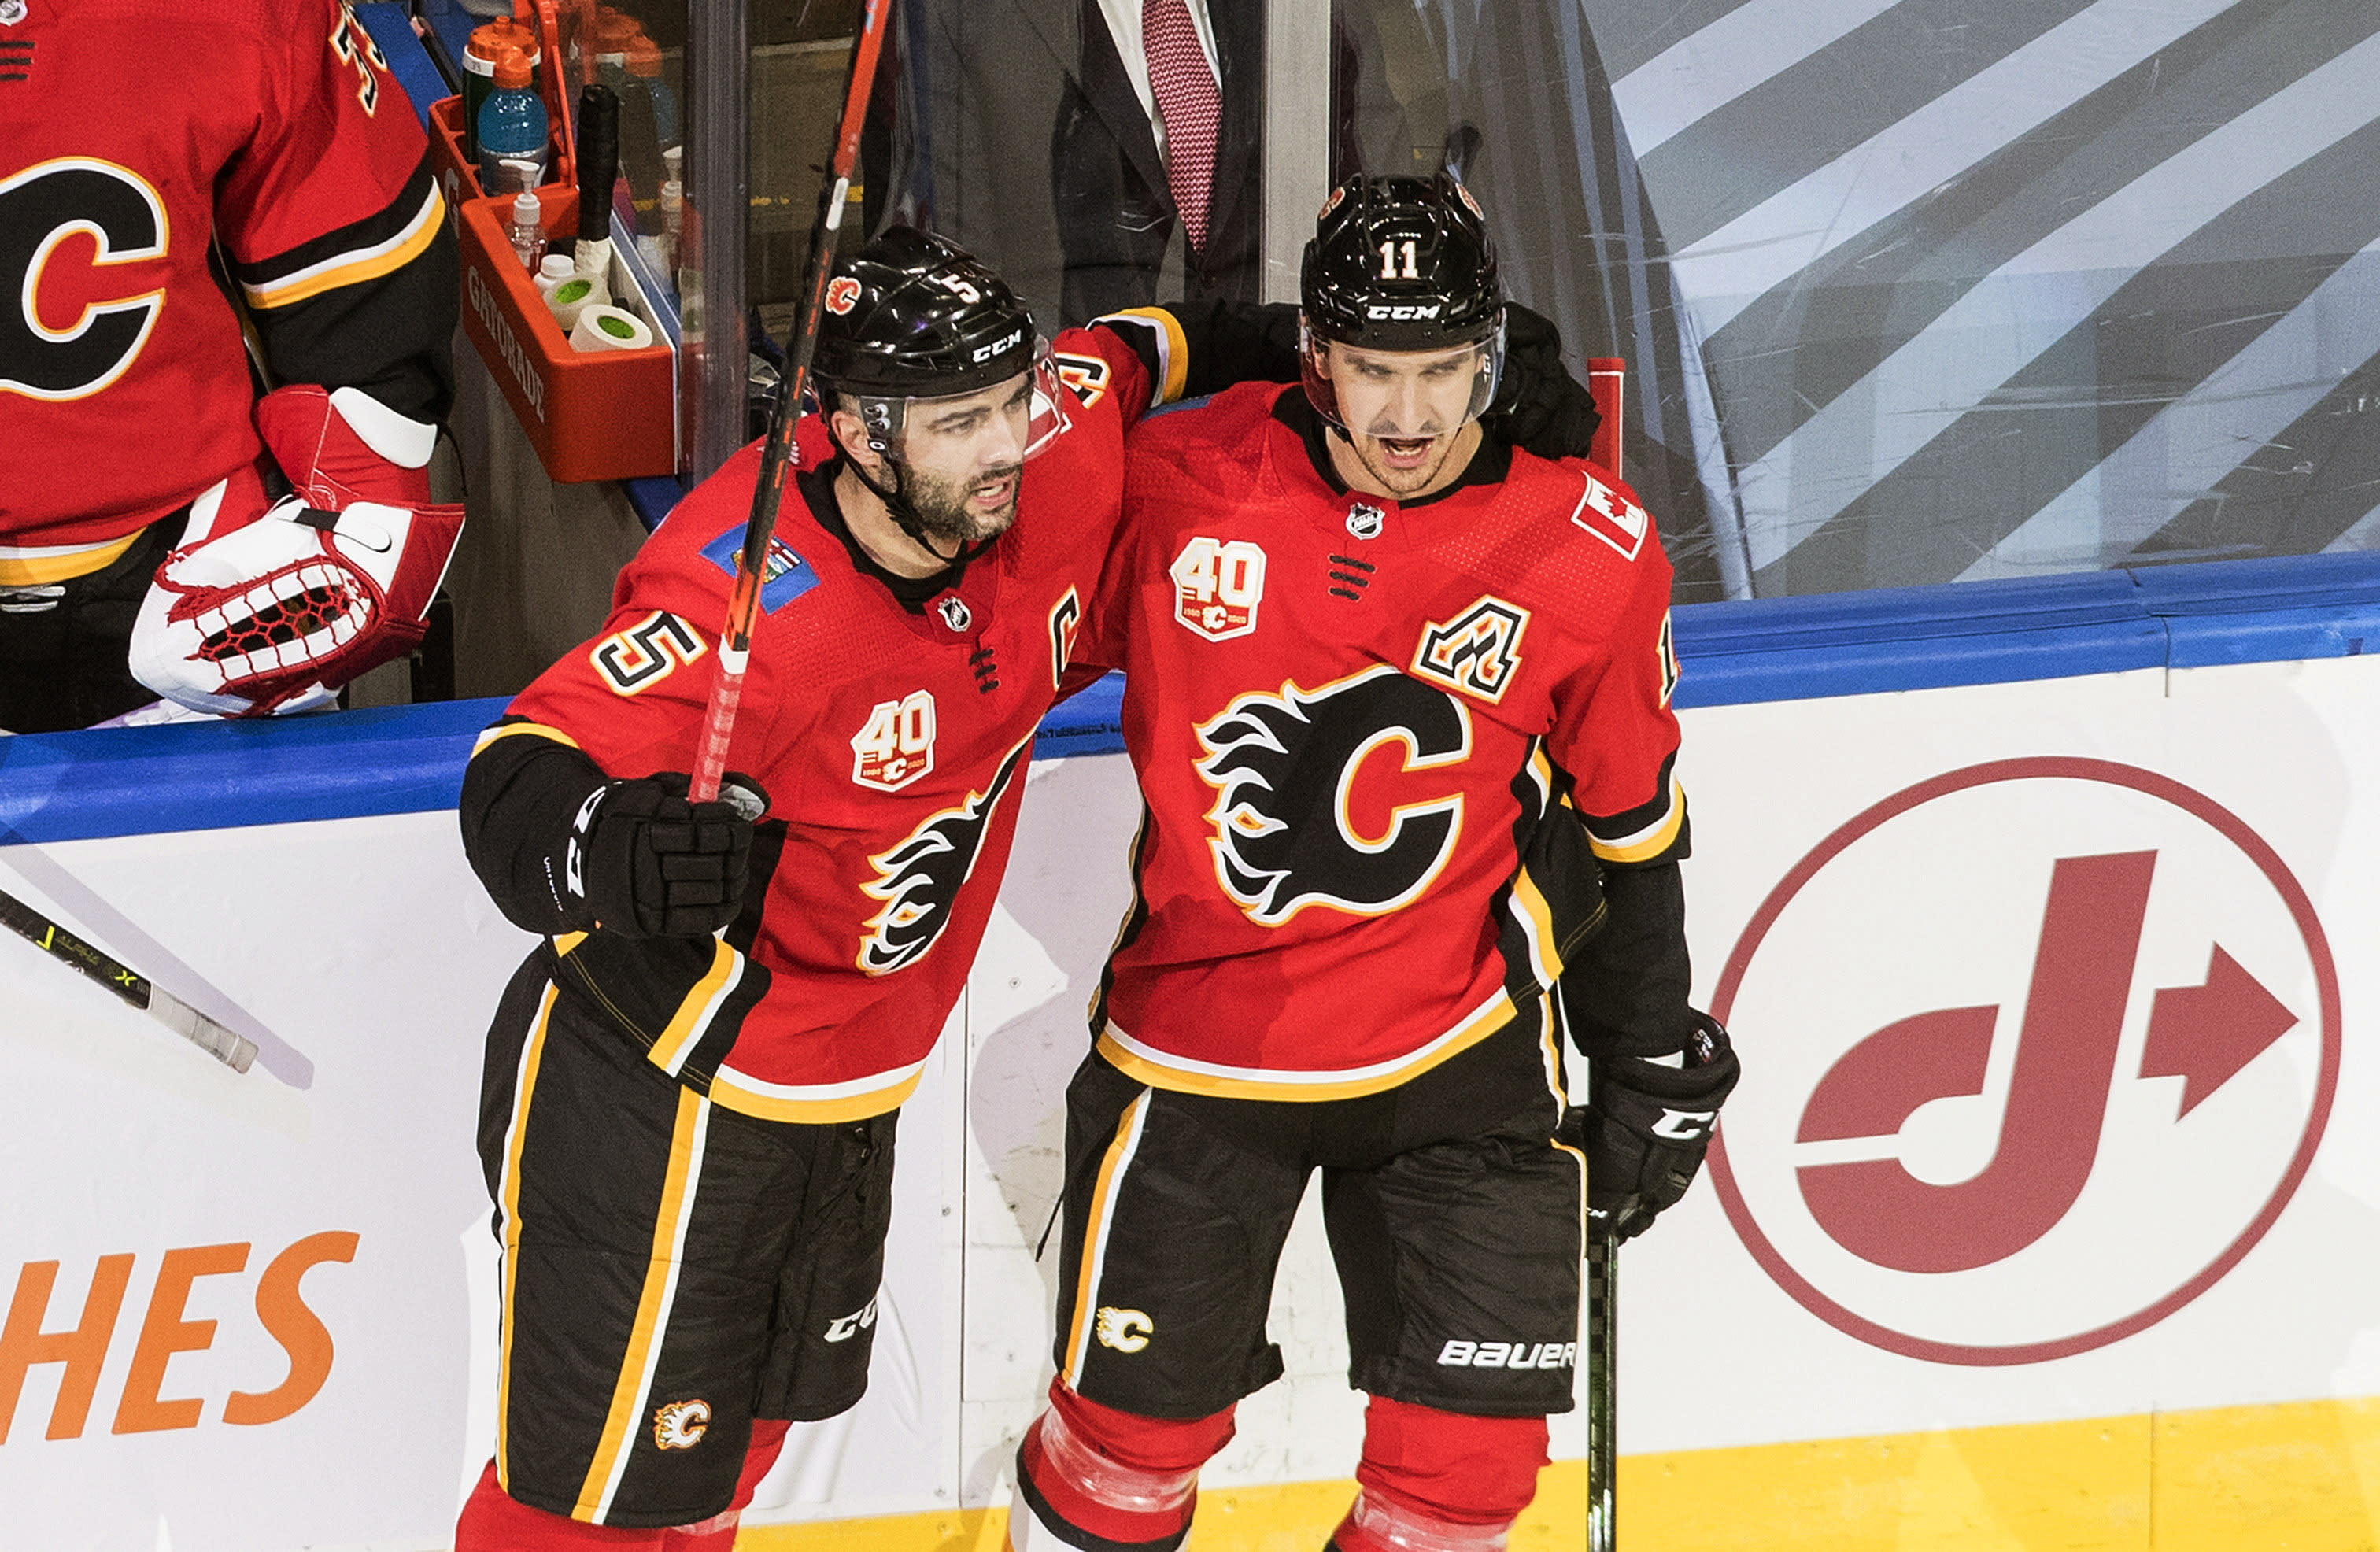 Calgary Flames' Mark Giordano (5) and Mikael Backlund (11) celebrate a goal against the Winnipeg Jets during the second period of an NHL hockey playoff game Saturday, Aug. 1, 2020 in Edmonton, Alberta. (Jason Franson/The Canadian Press via AP)